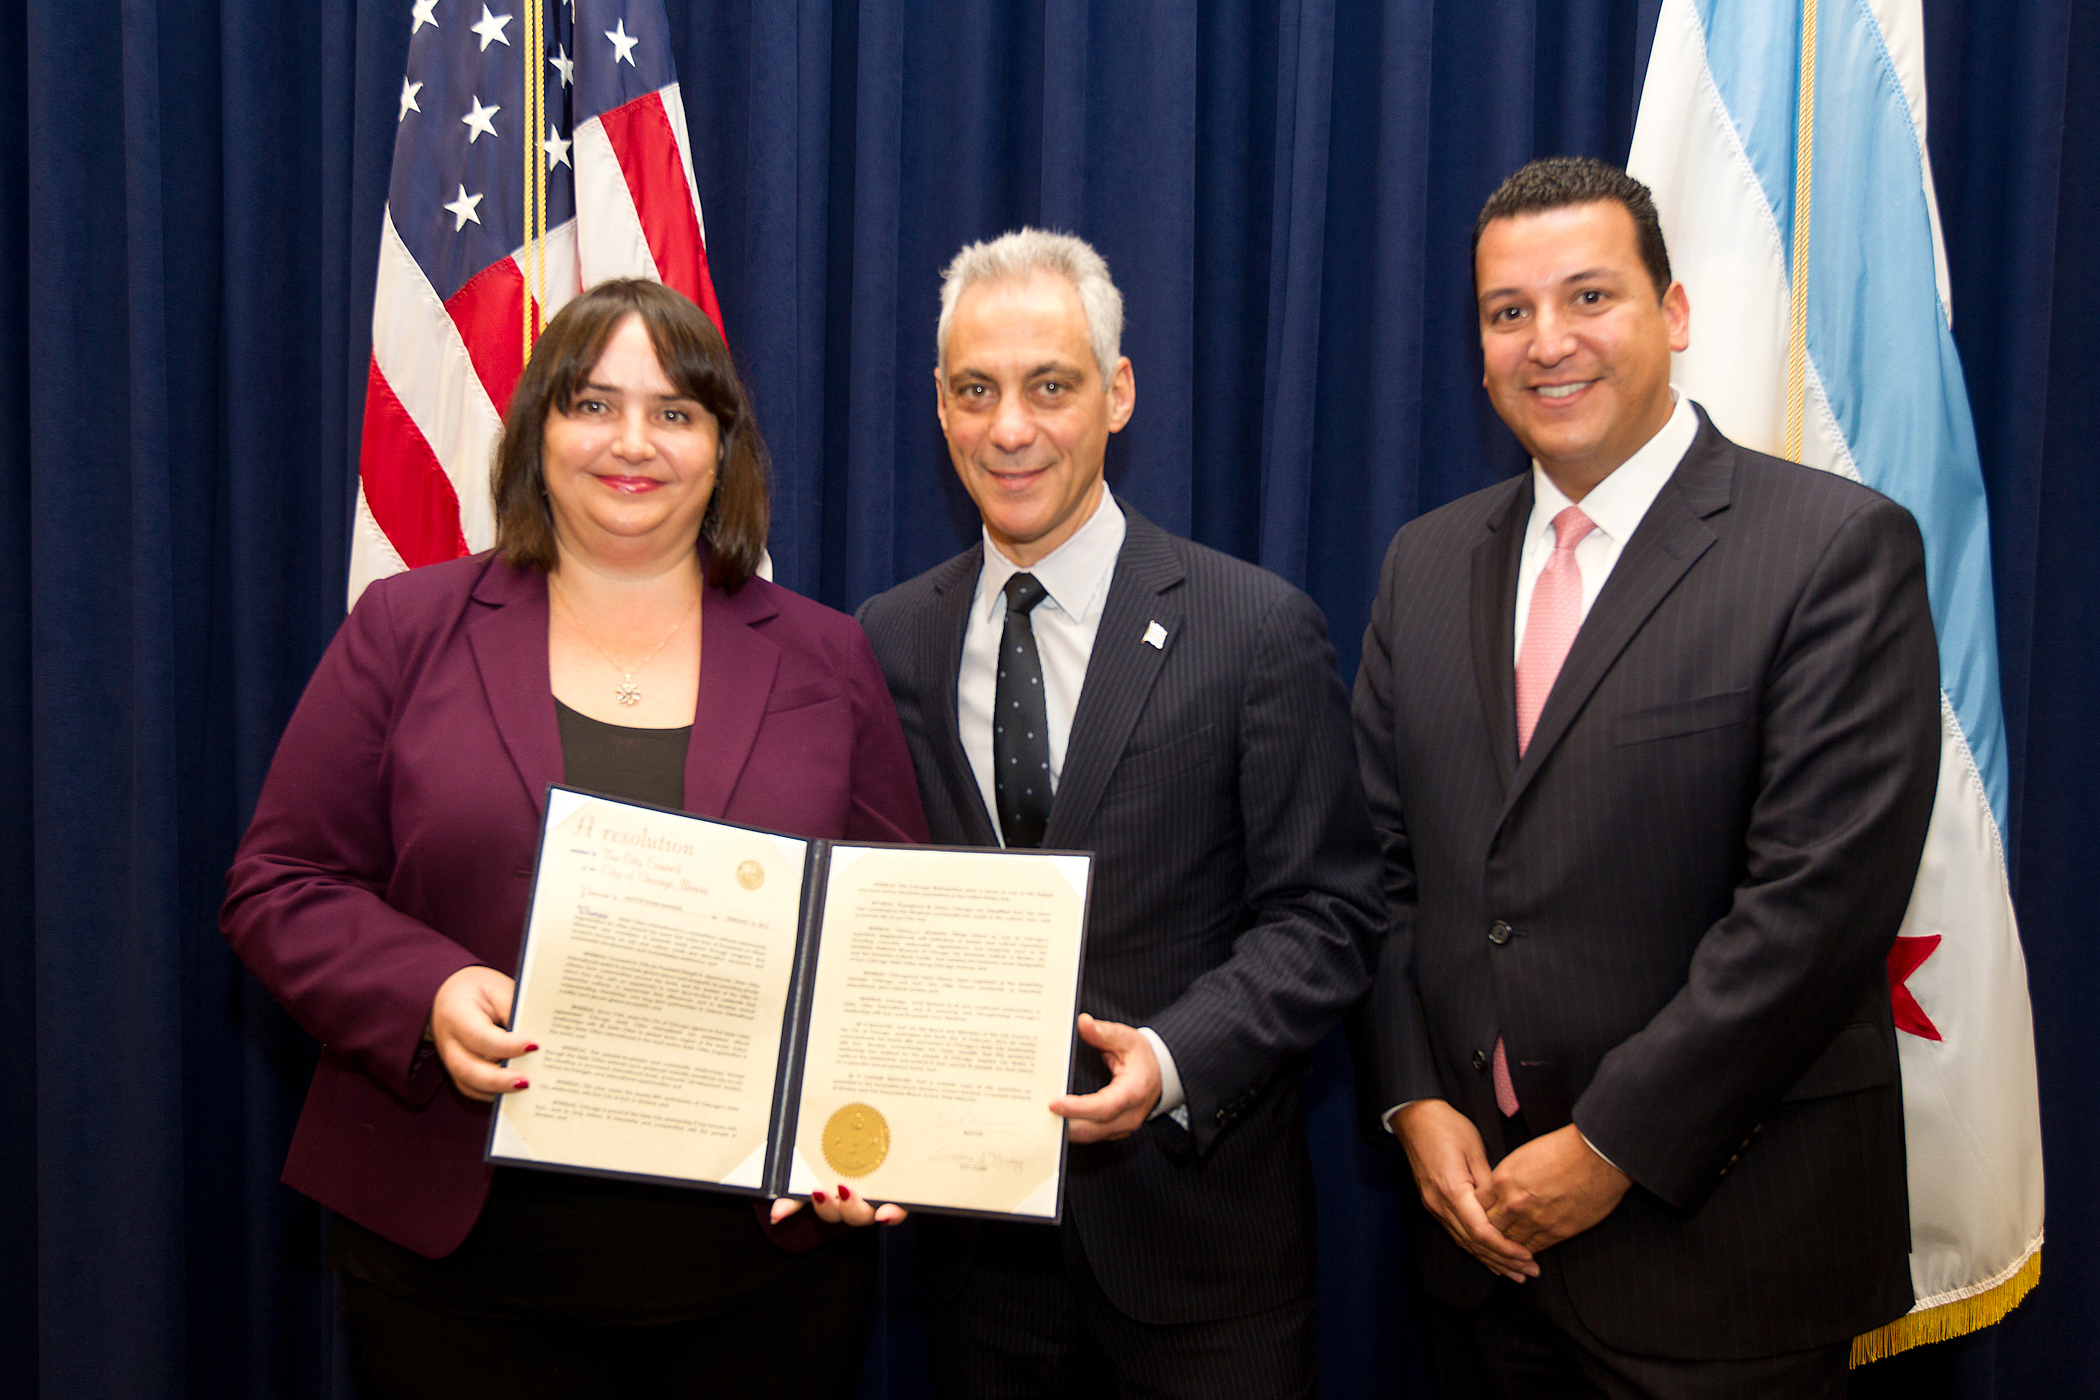 Kyiv, Ukraine Sister City Anniversary Resolution: The Honorable Larysa Gerasko, Consul General of Ukraine; Chicago Mayor Rahm Emanuel; and Leroy Allala, Executive Director of Chicago Sister Cities International. Photo by Brooke Collins, City of Chicago.